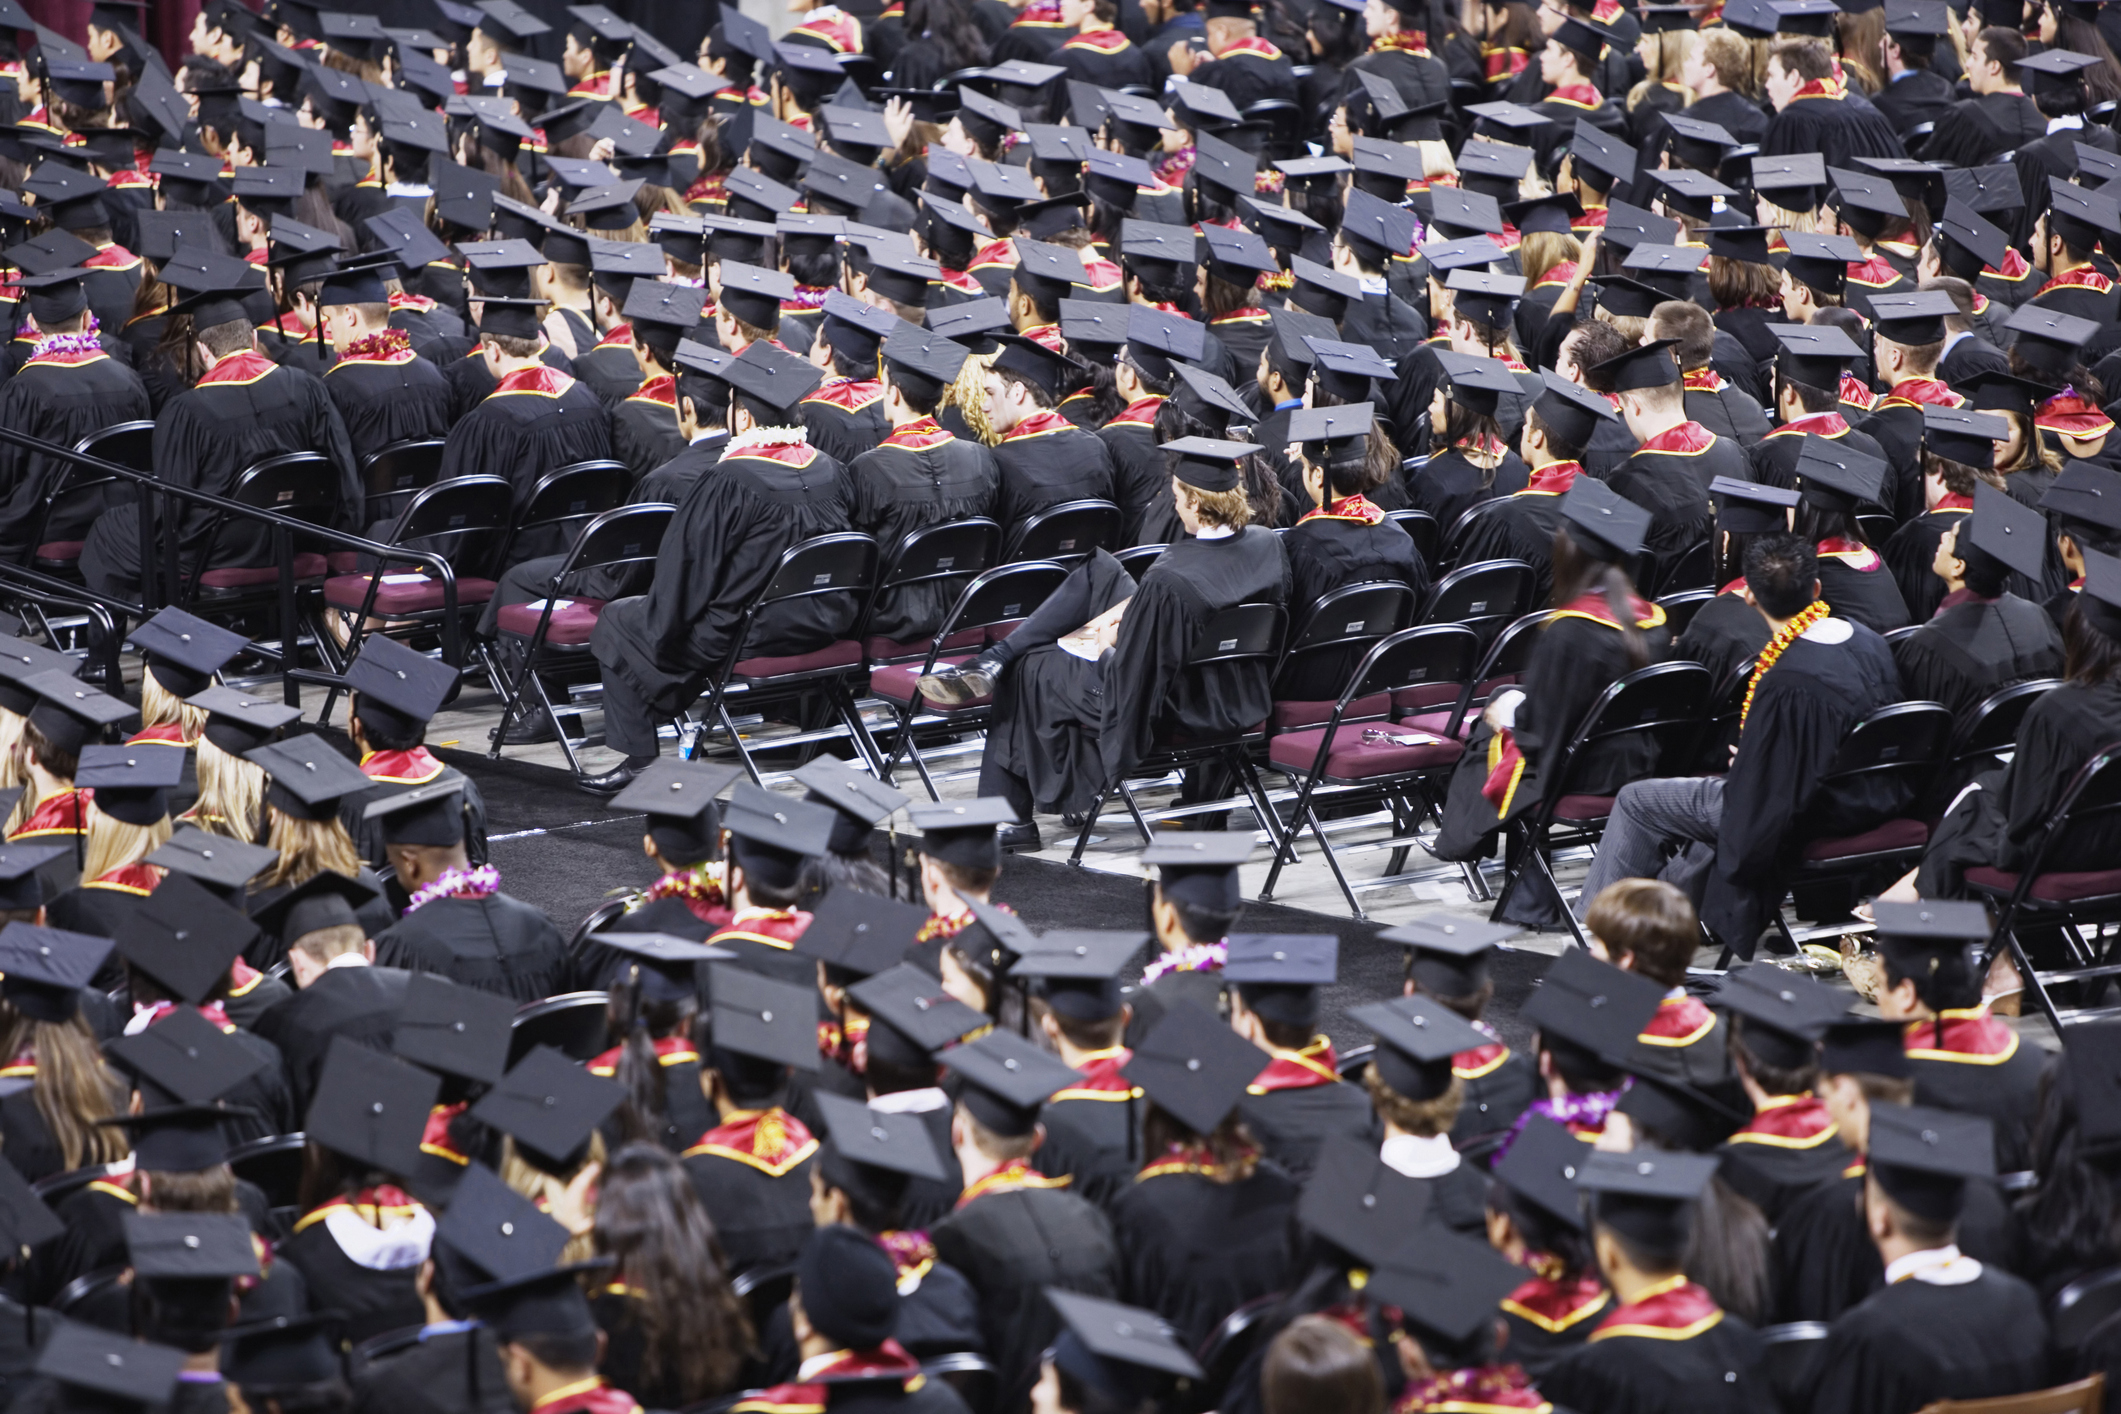 High angle view of rows of seated students in caps and gowns during a graduation ceremony in a indoor auditorium, University of Southern California, Los Angeles, California.